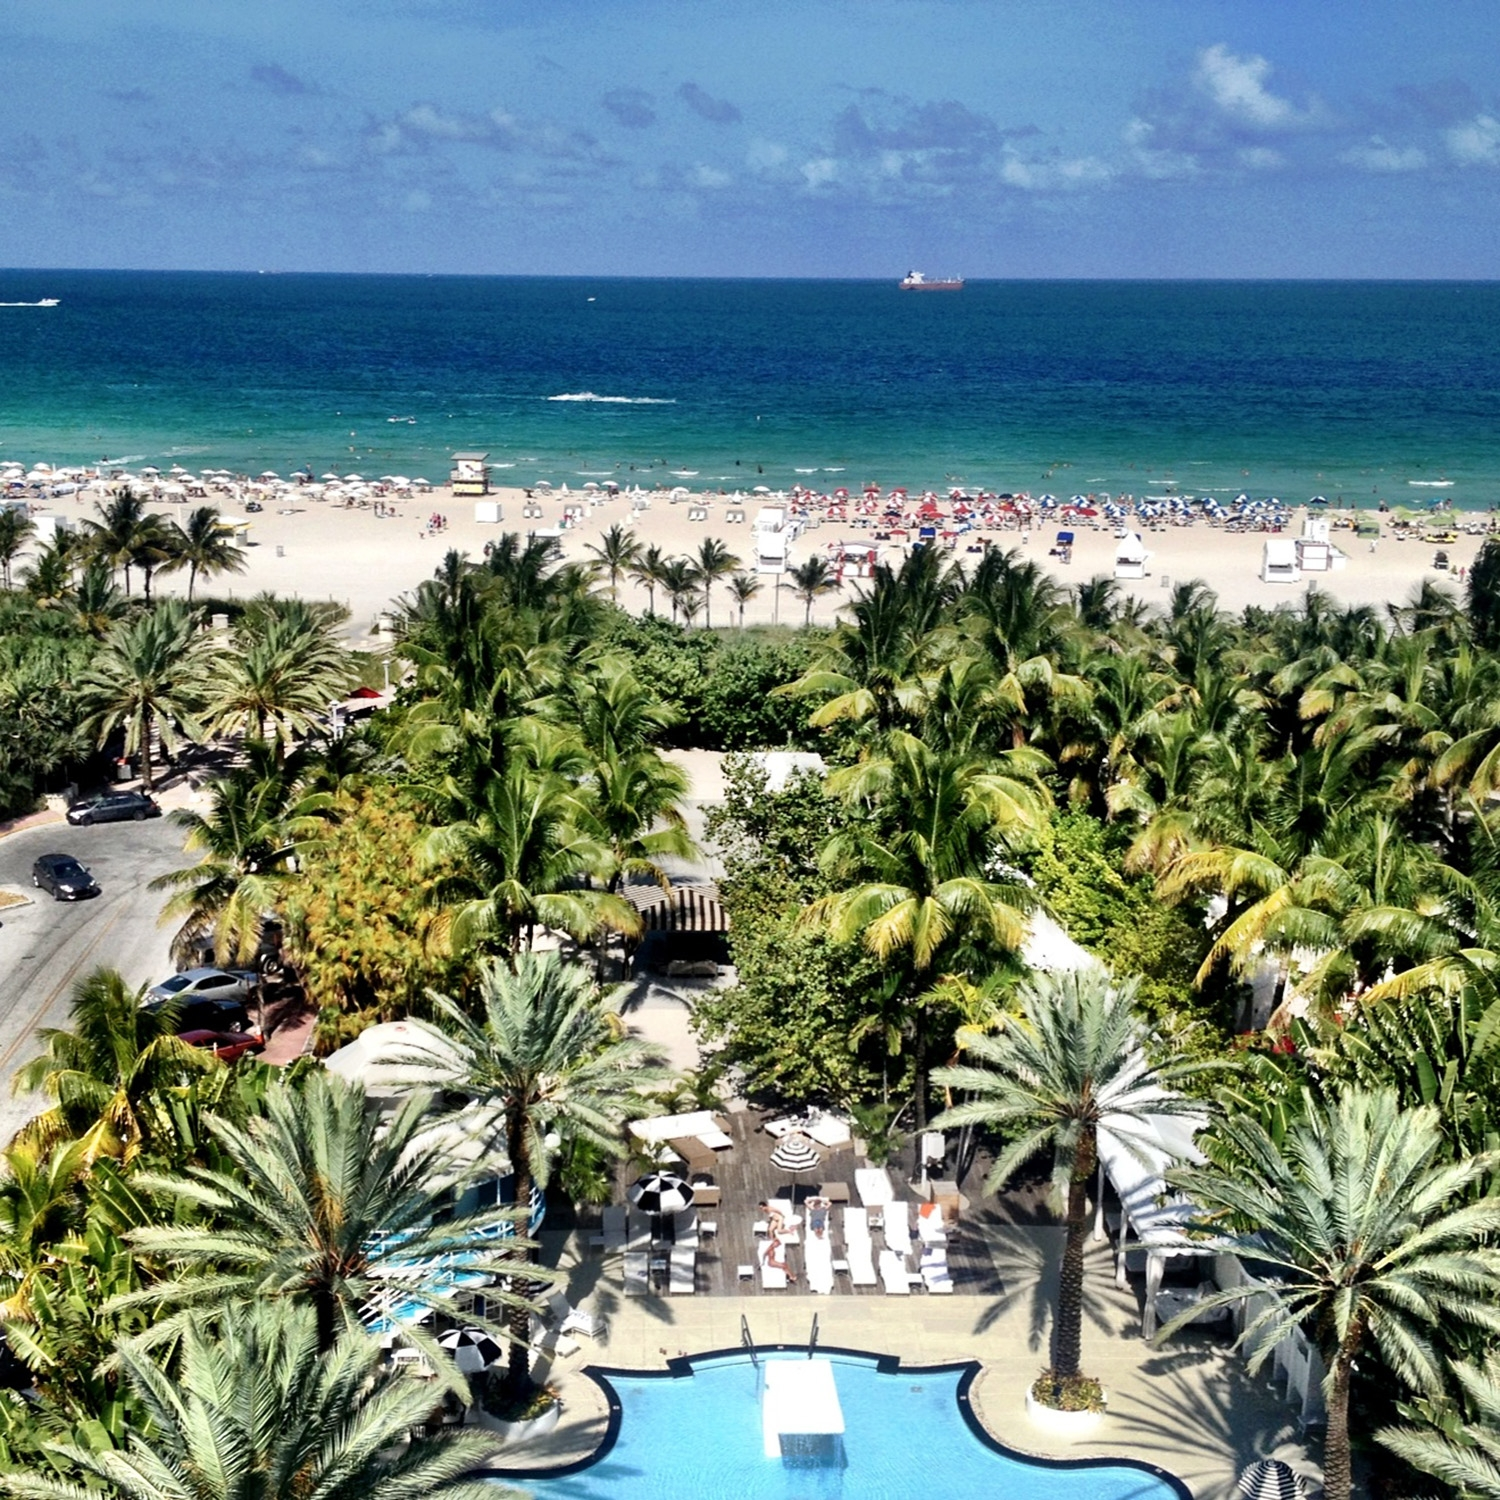 Looking over the palm trees and pool to the white sand and bright sea of South Beach